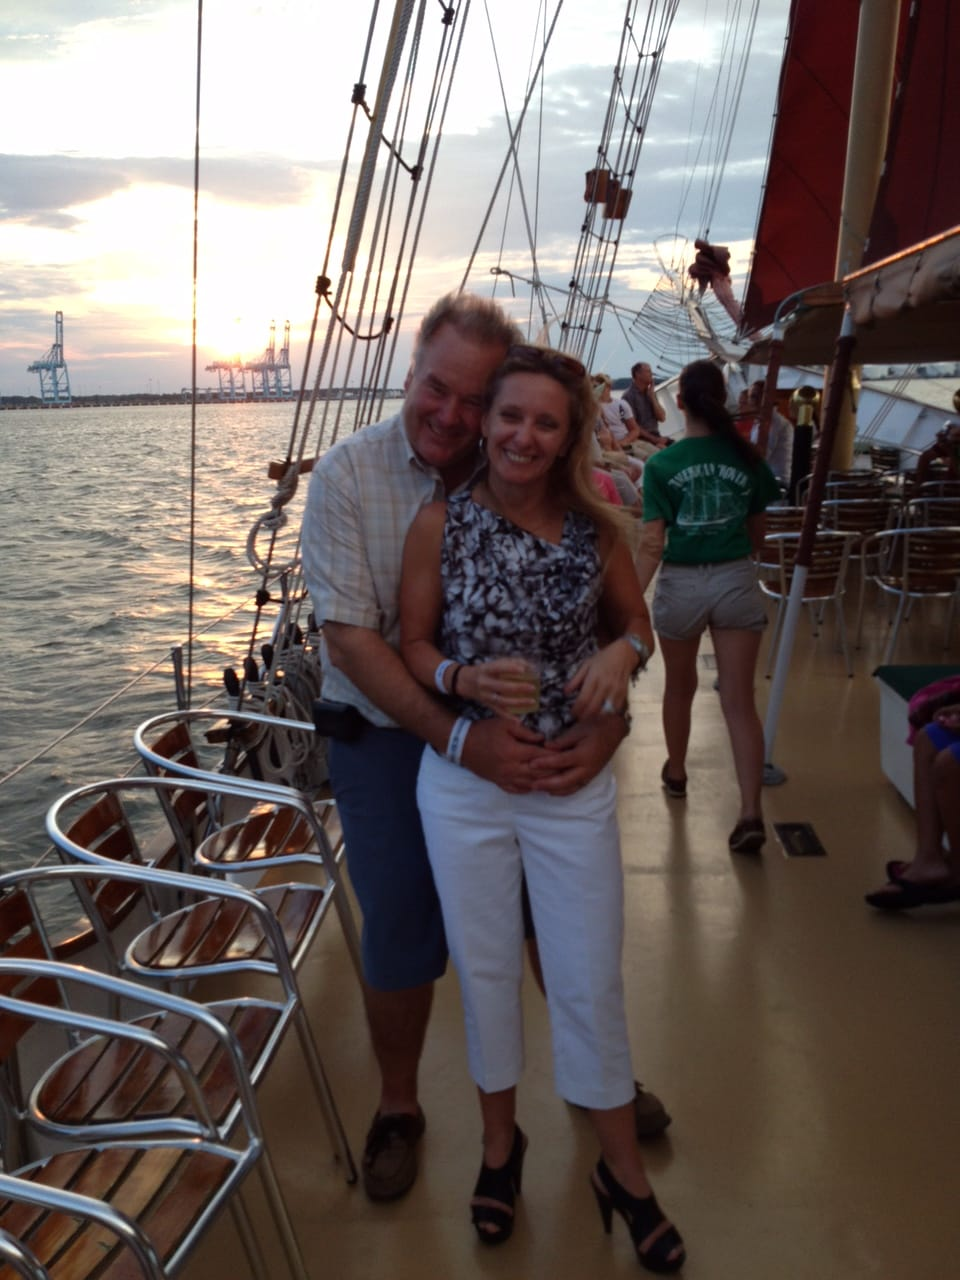 Sherry & David from Chapel Hill